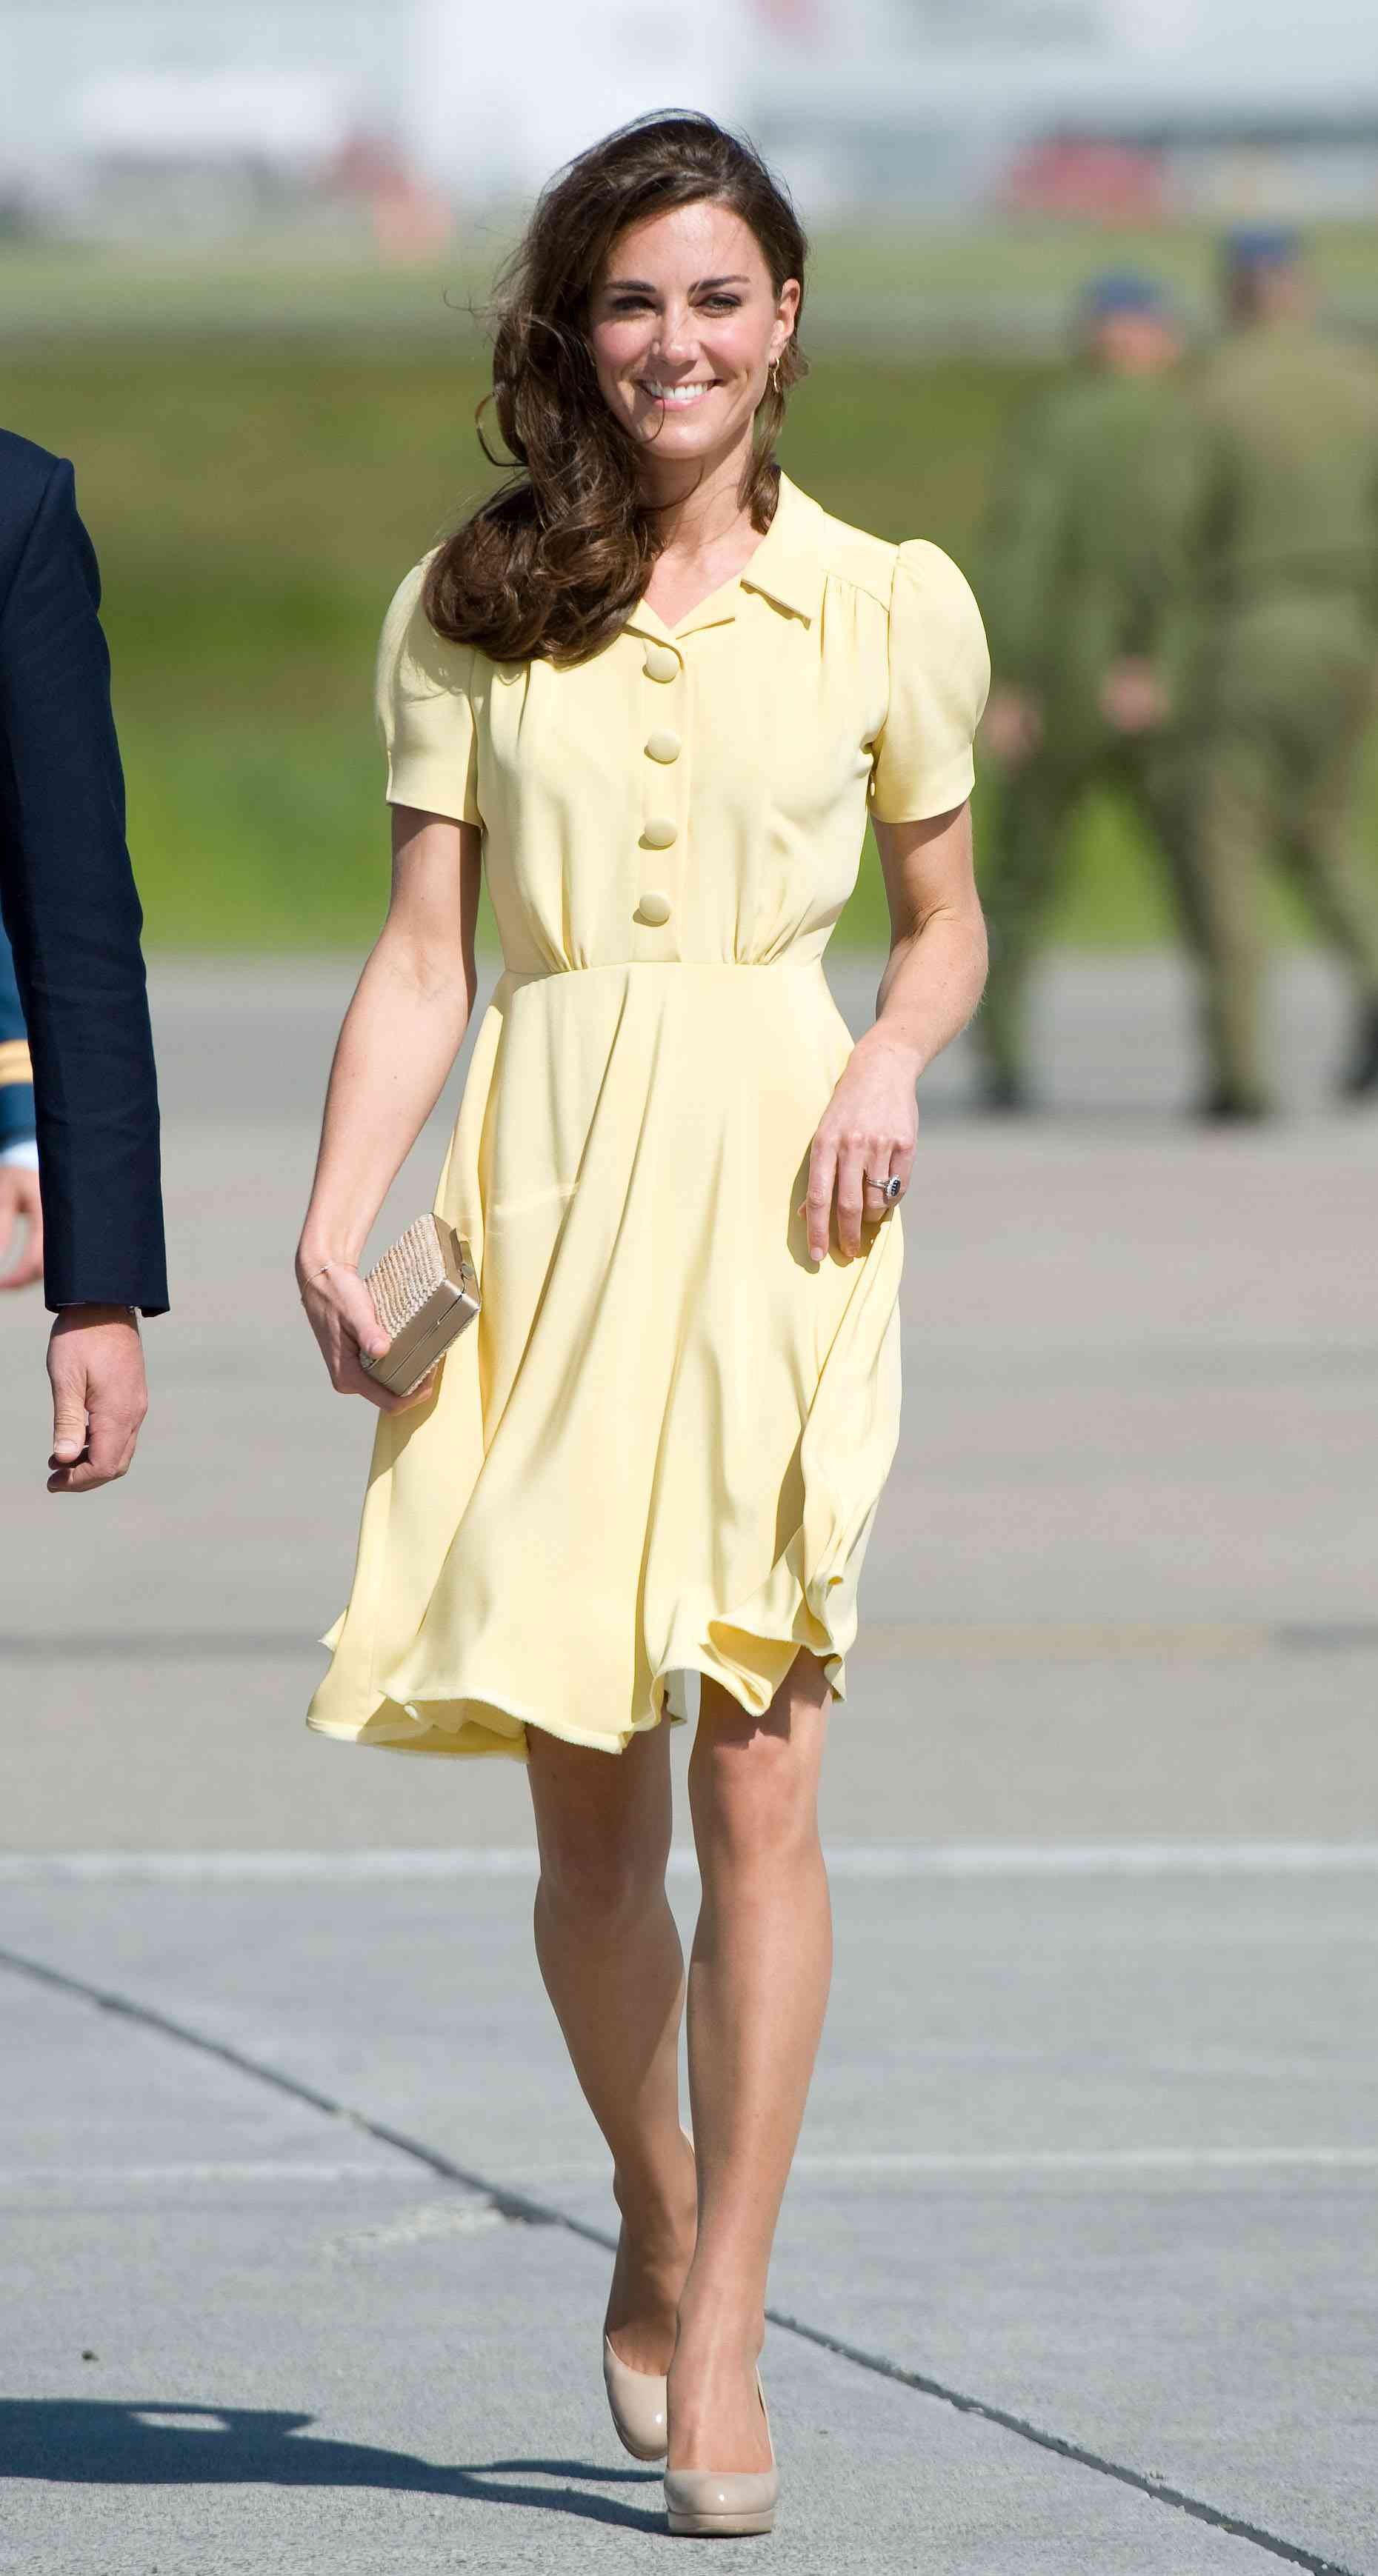 The Kate middleton hot pussy